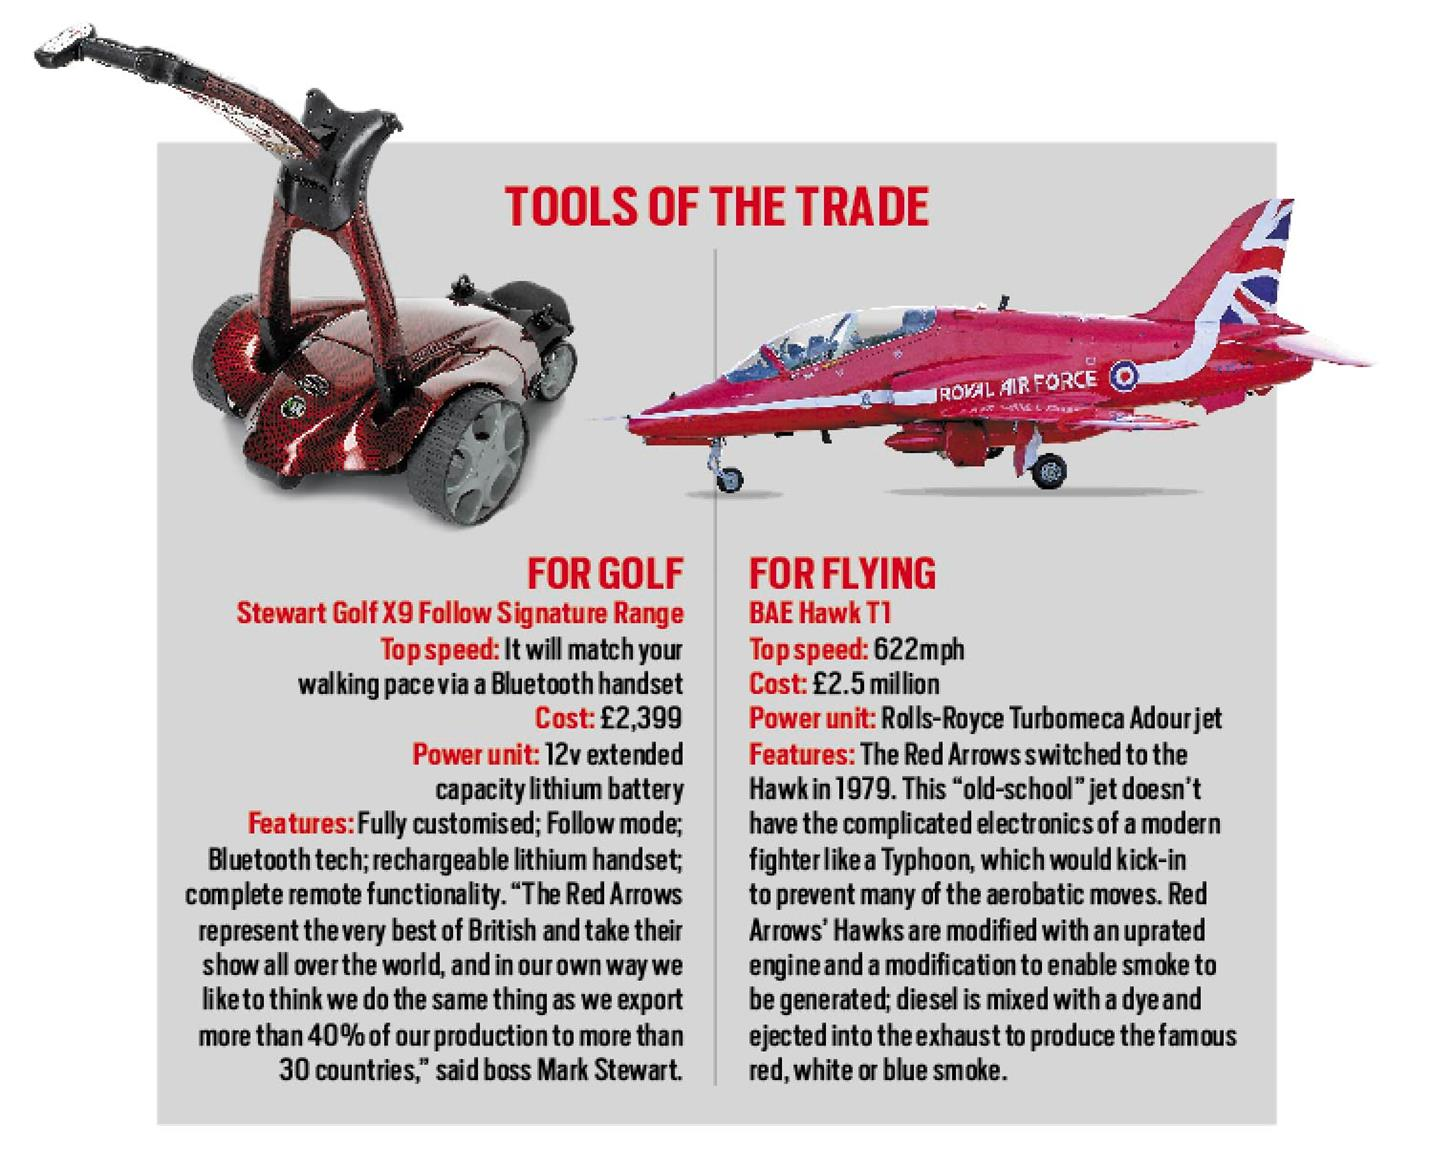 Red Arrows tools